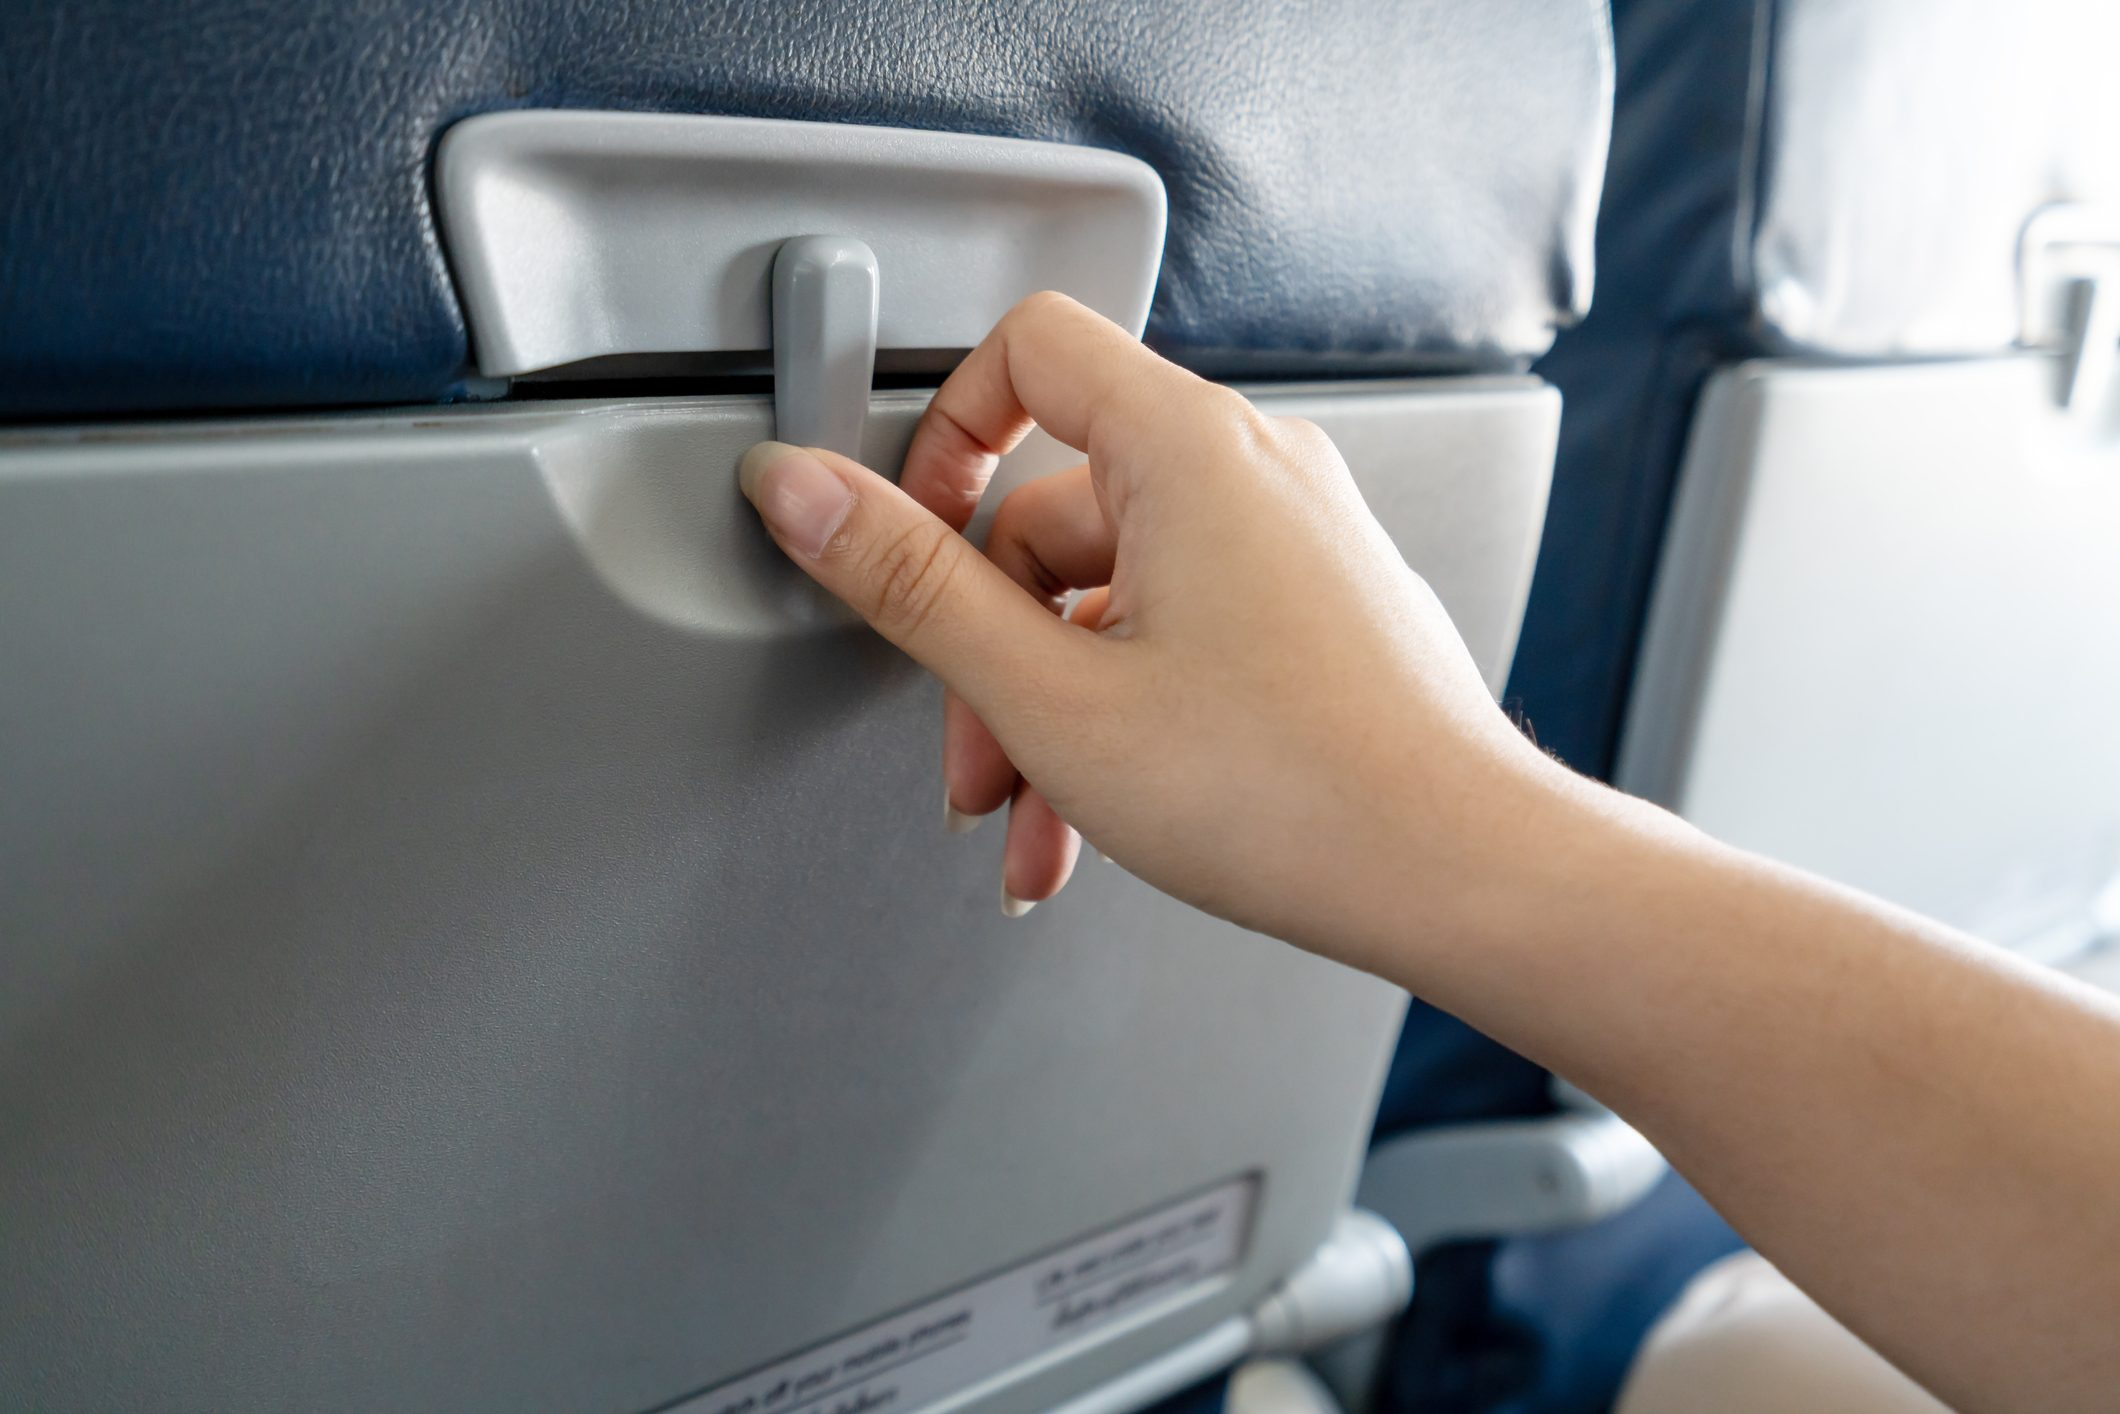 Hand of asian female passenger try to open a tray in front of the seat in low cost airplane by slide to unlock and ready for inflight meal or food service. Plastic table in back seat in economy class.